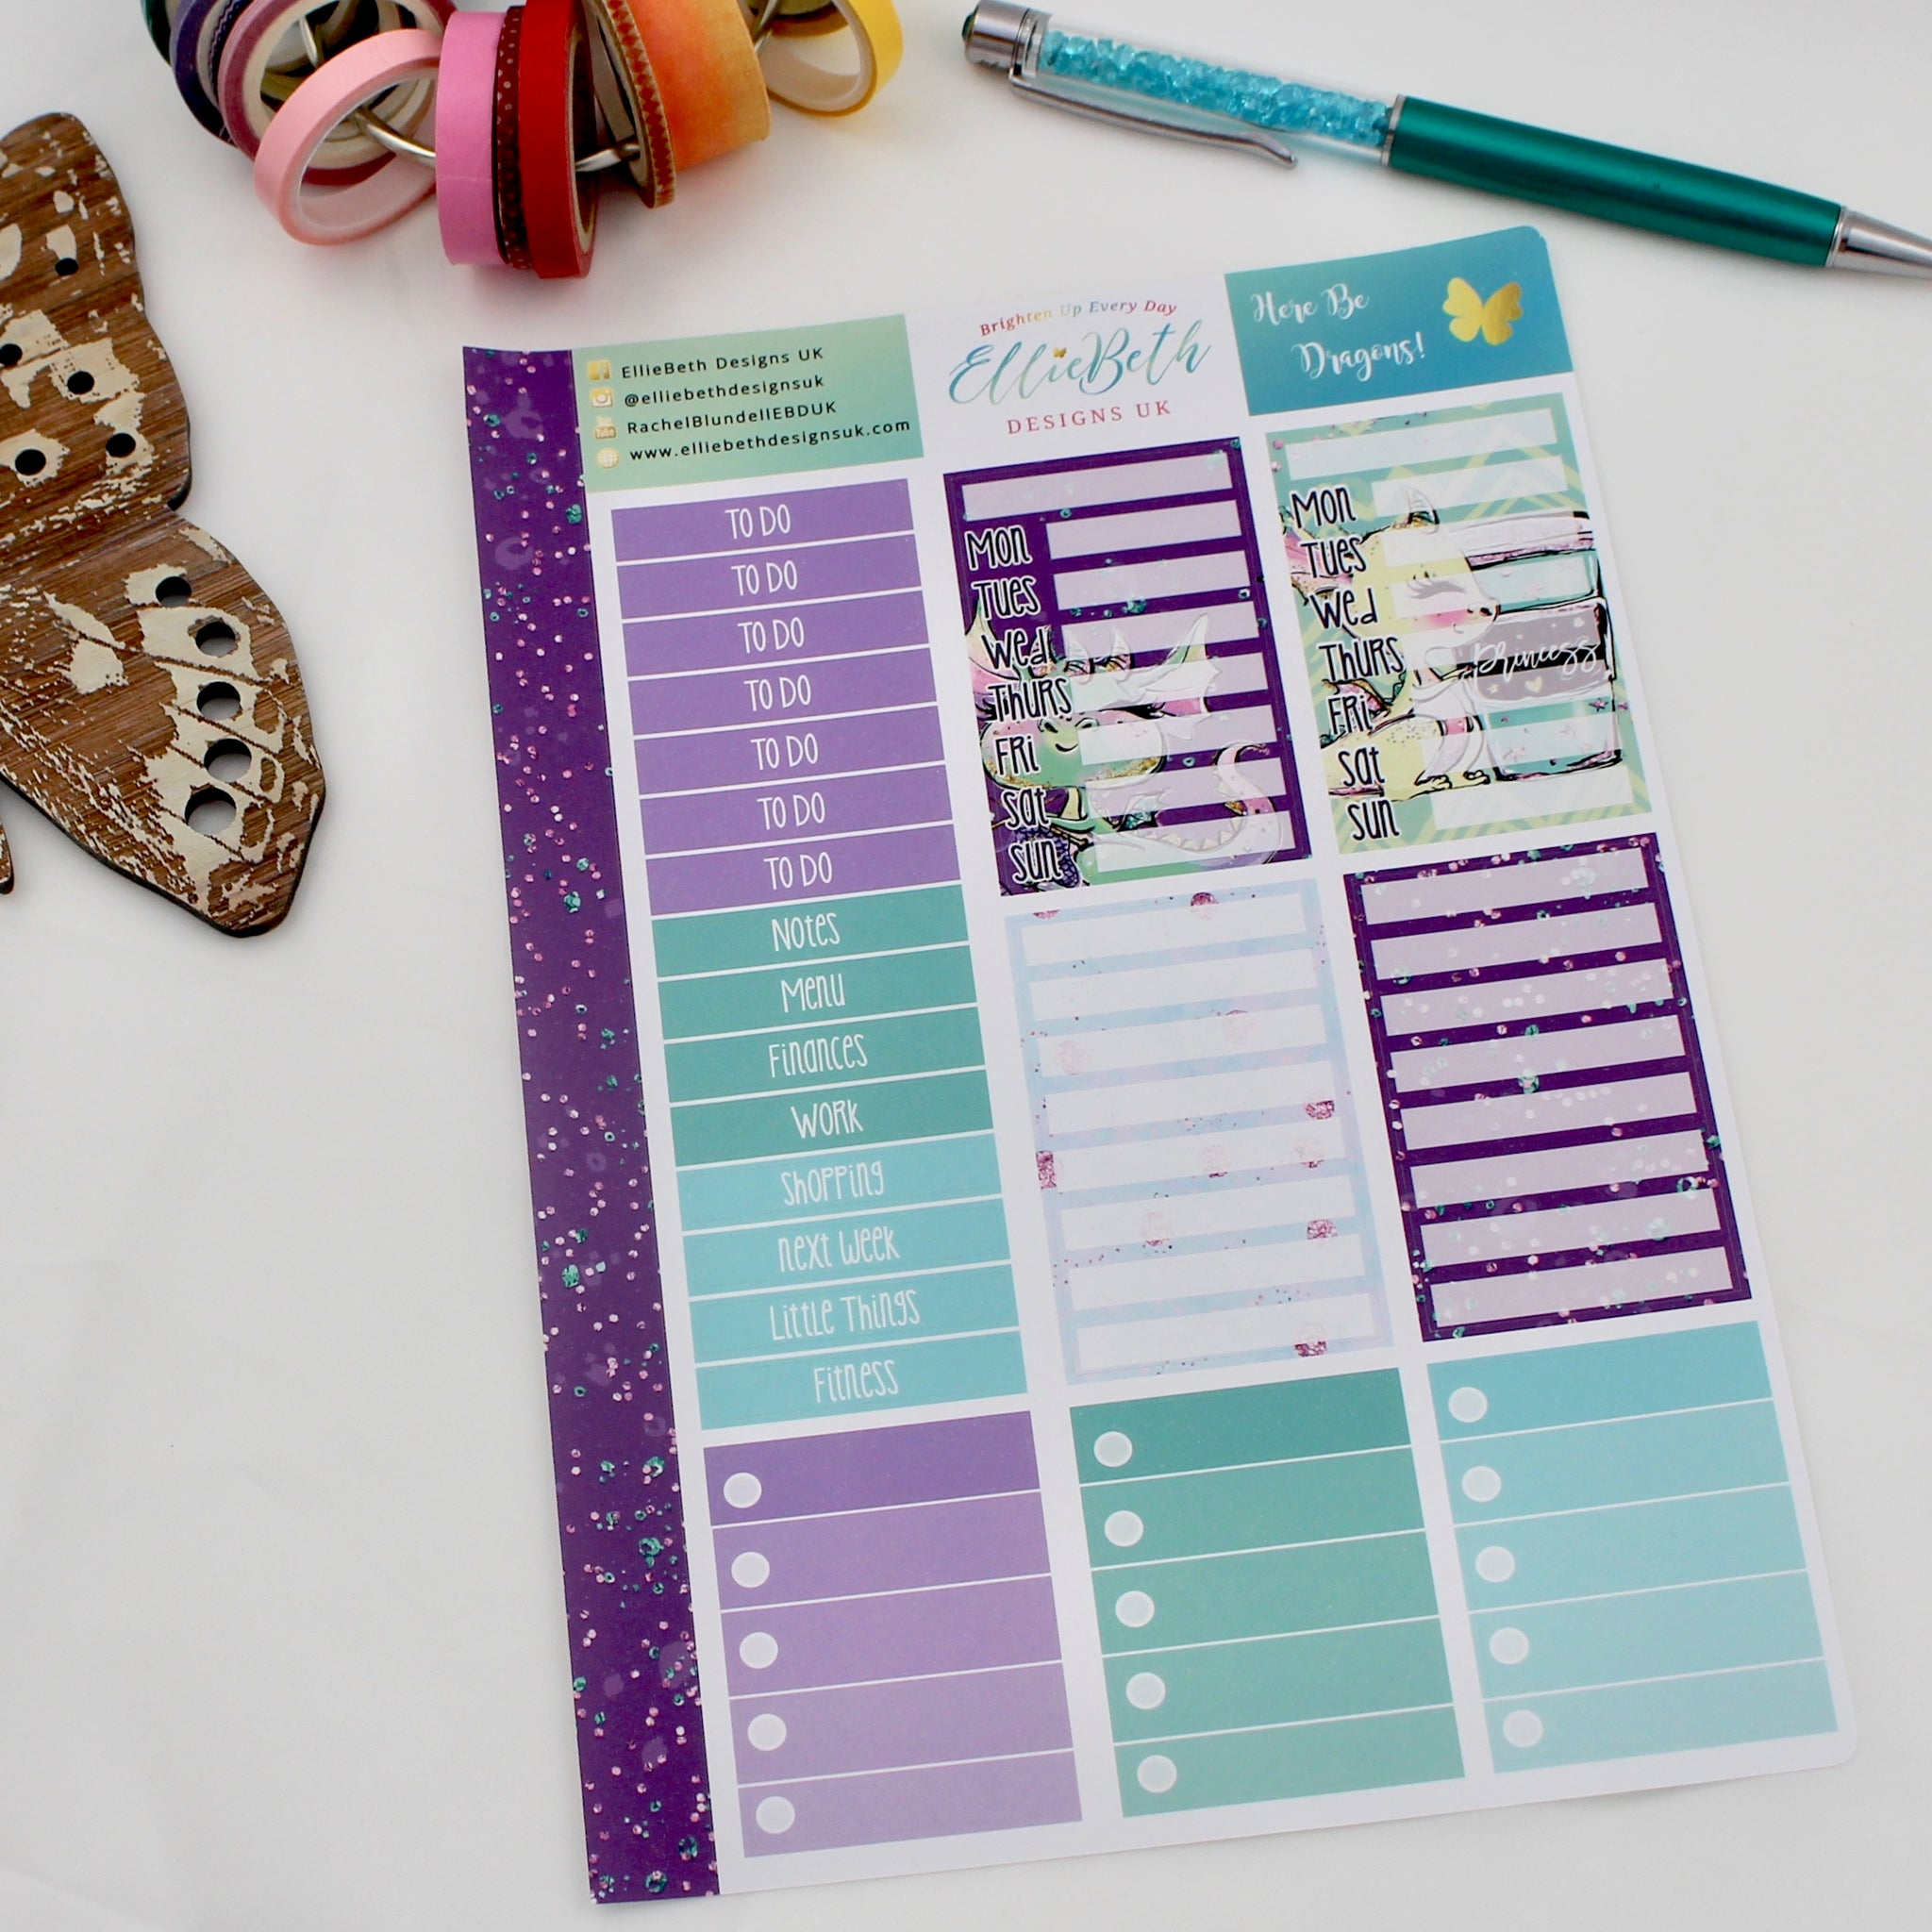 'Here Be Dragons' - Make a List Sheet -  A5 binder ready planner stickers